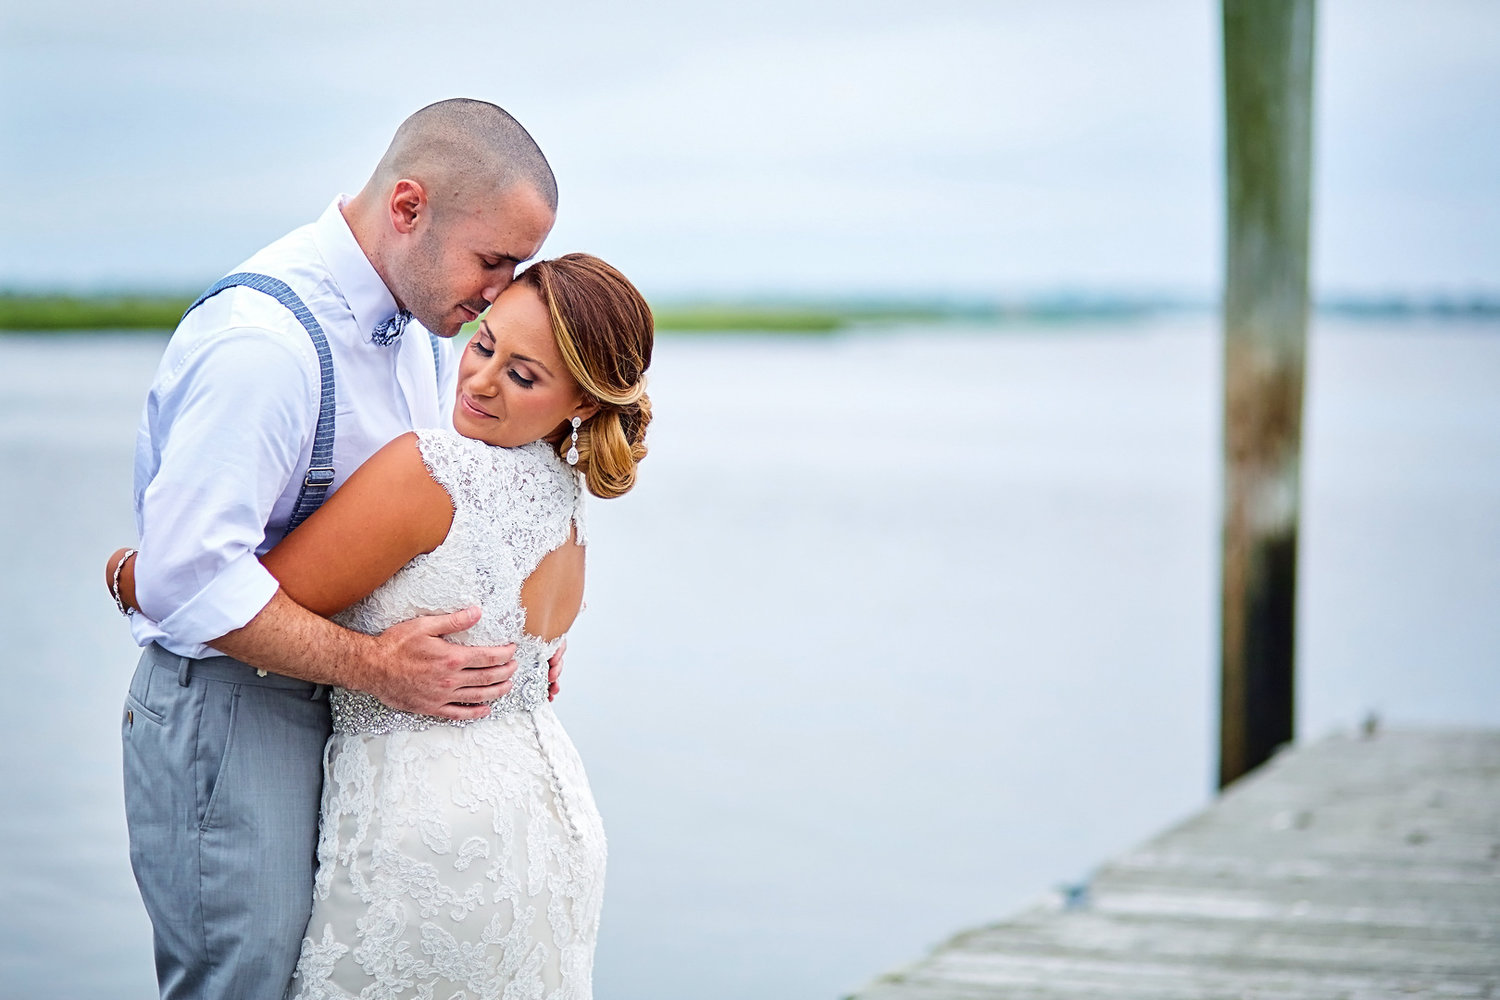 Casual bride and groom embrace on a waterside dock in Long Island, New York.